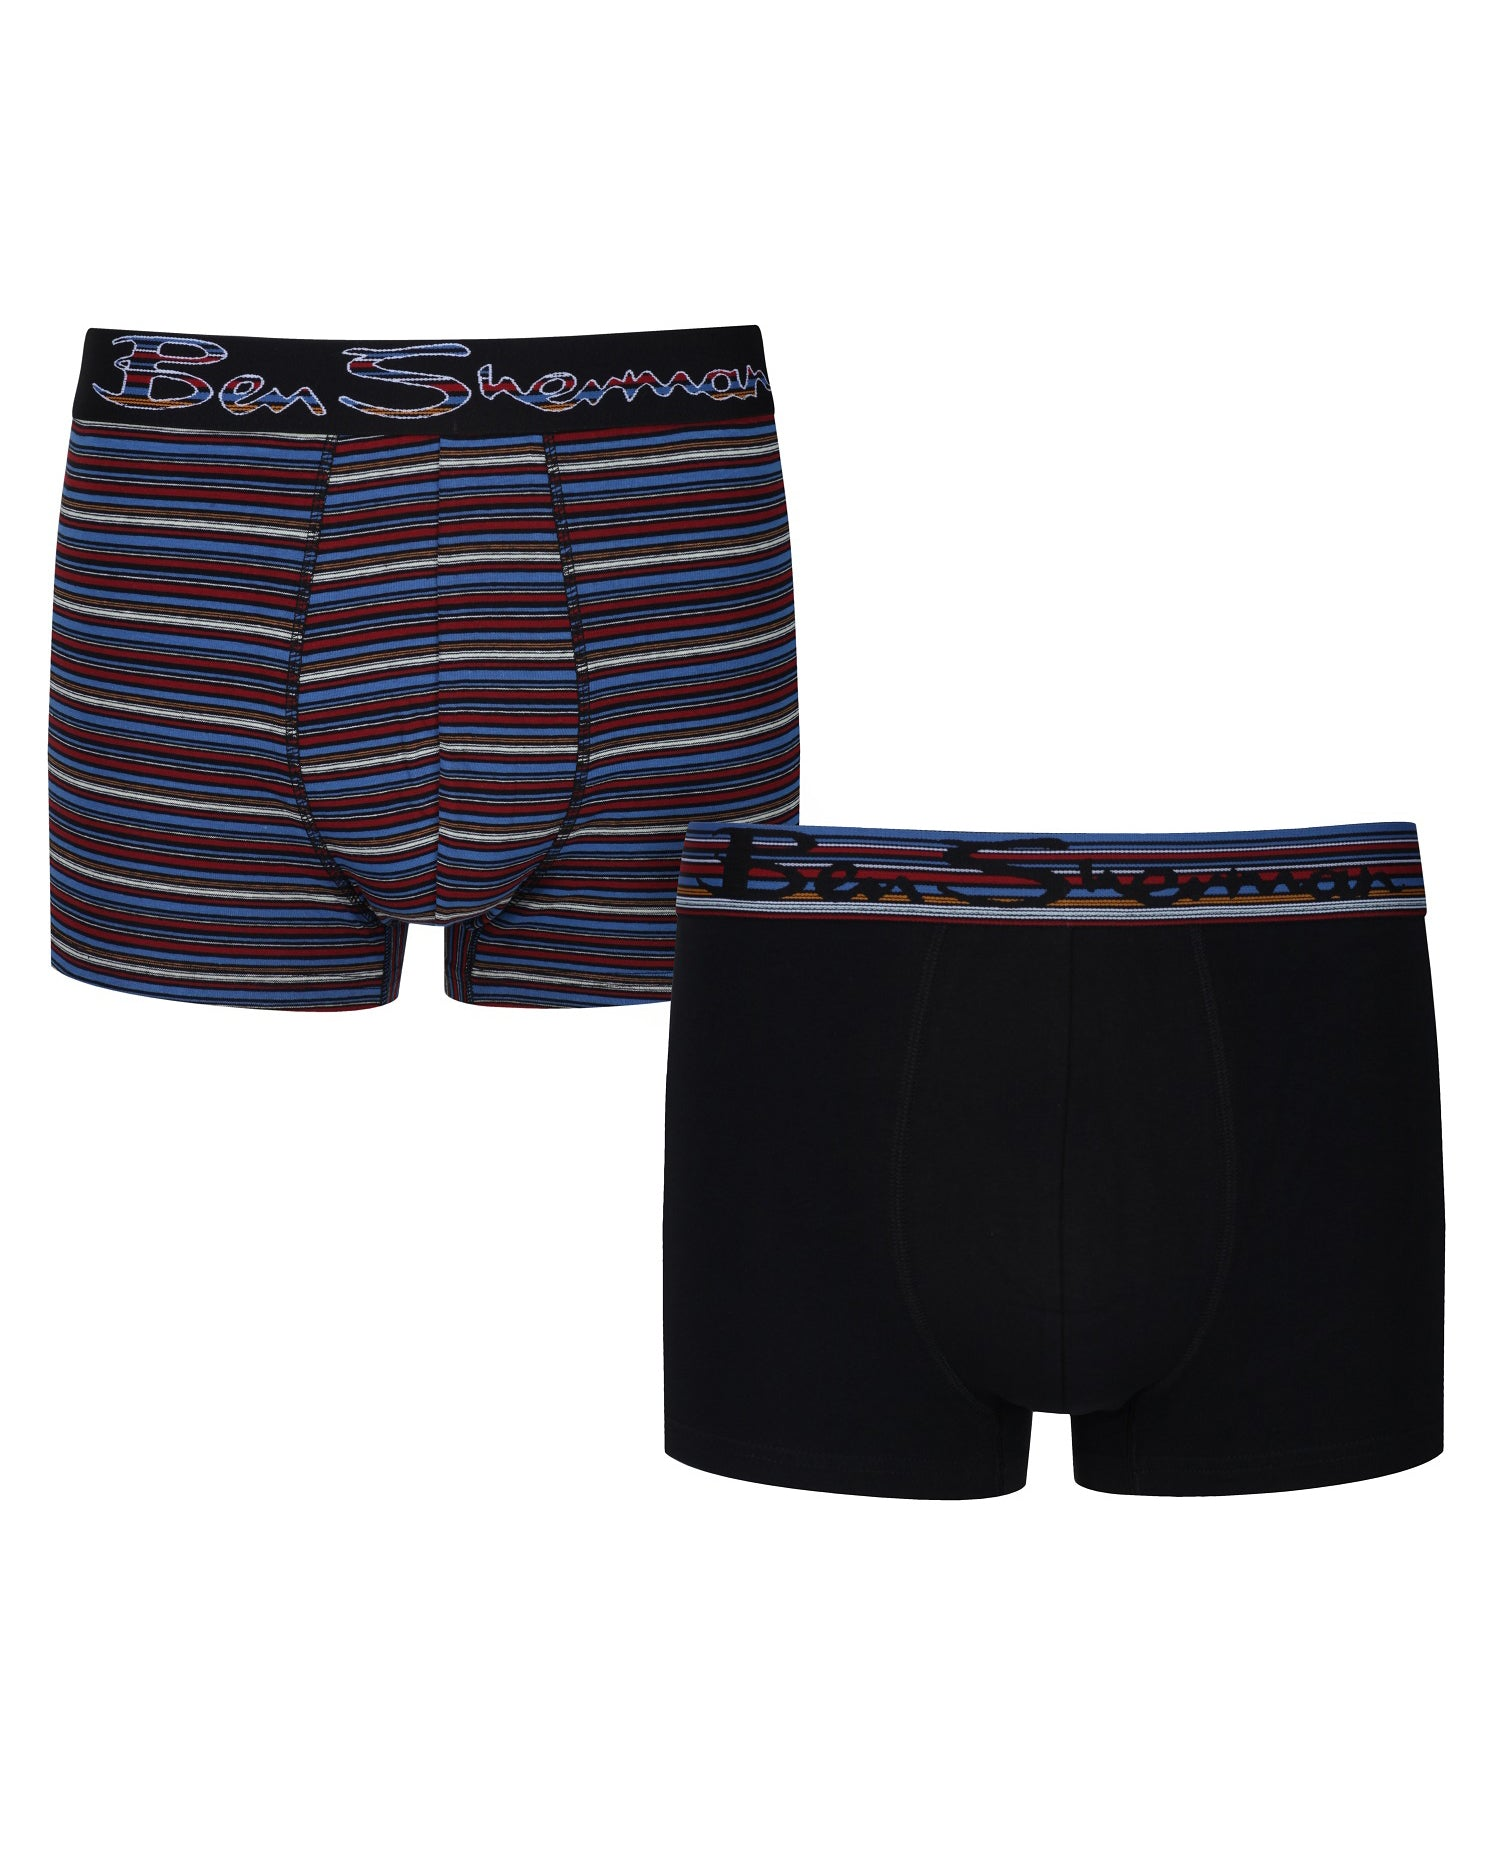 Gib Men's 2-Pack Fitted Boxer-Briefs - Black/Multi Stripe